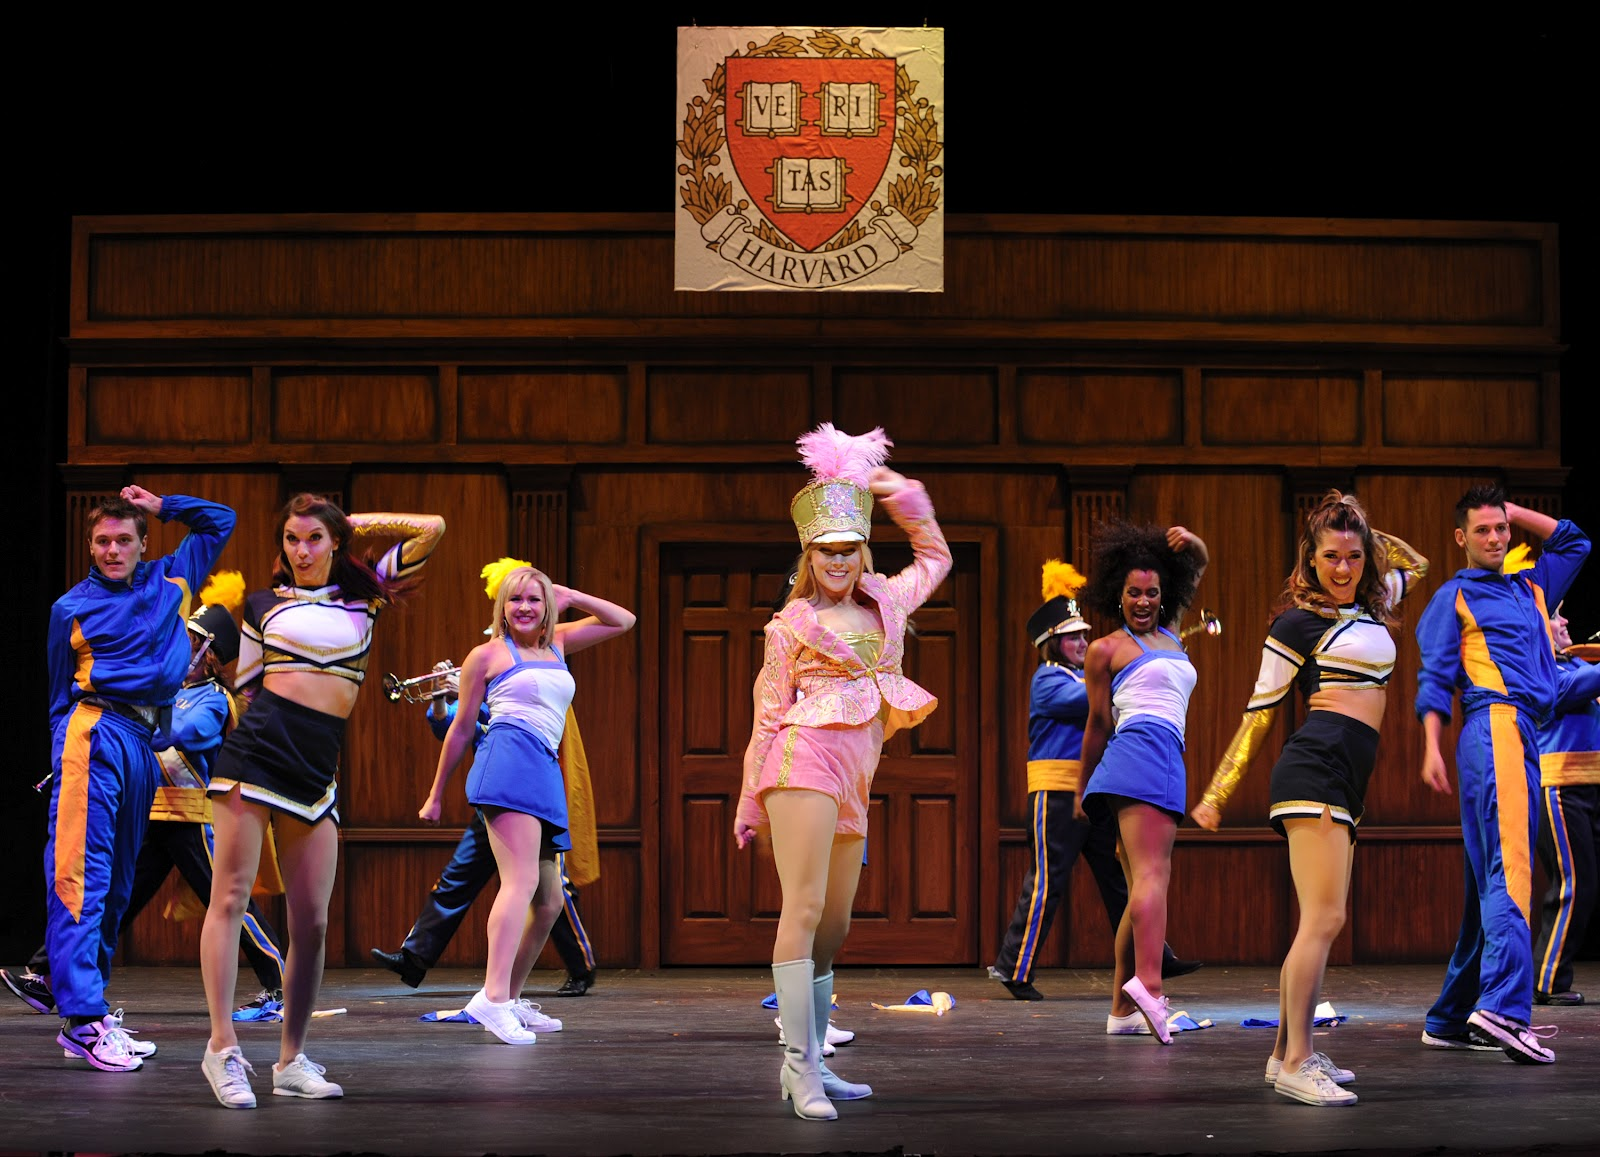 the san diego drama king theatre review legally blonde the emma degerstedt and company photo courtesy of ken jacques